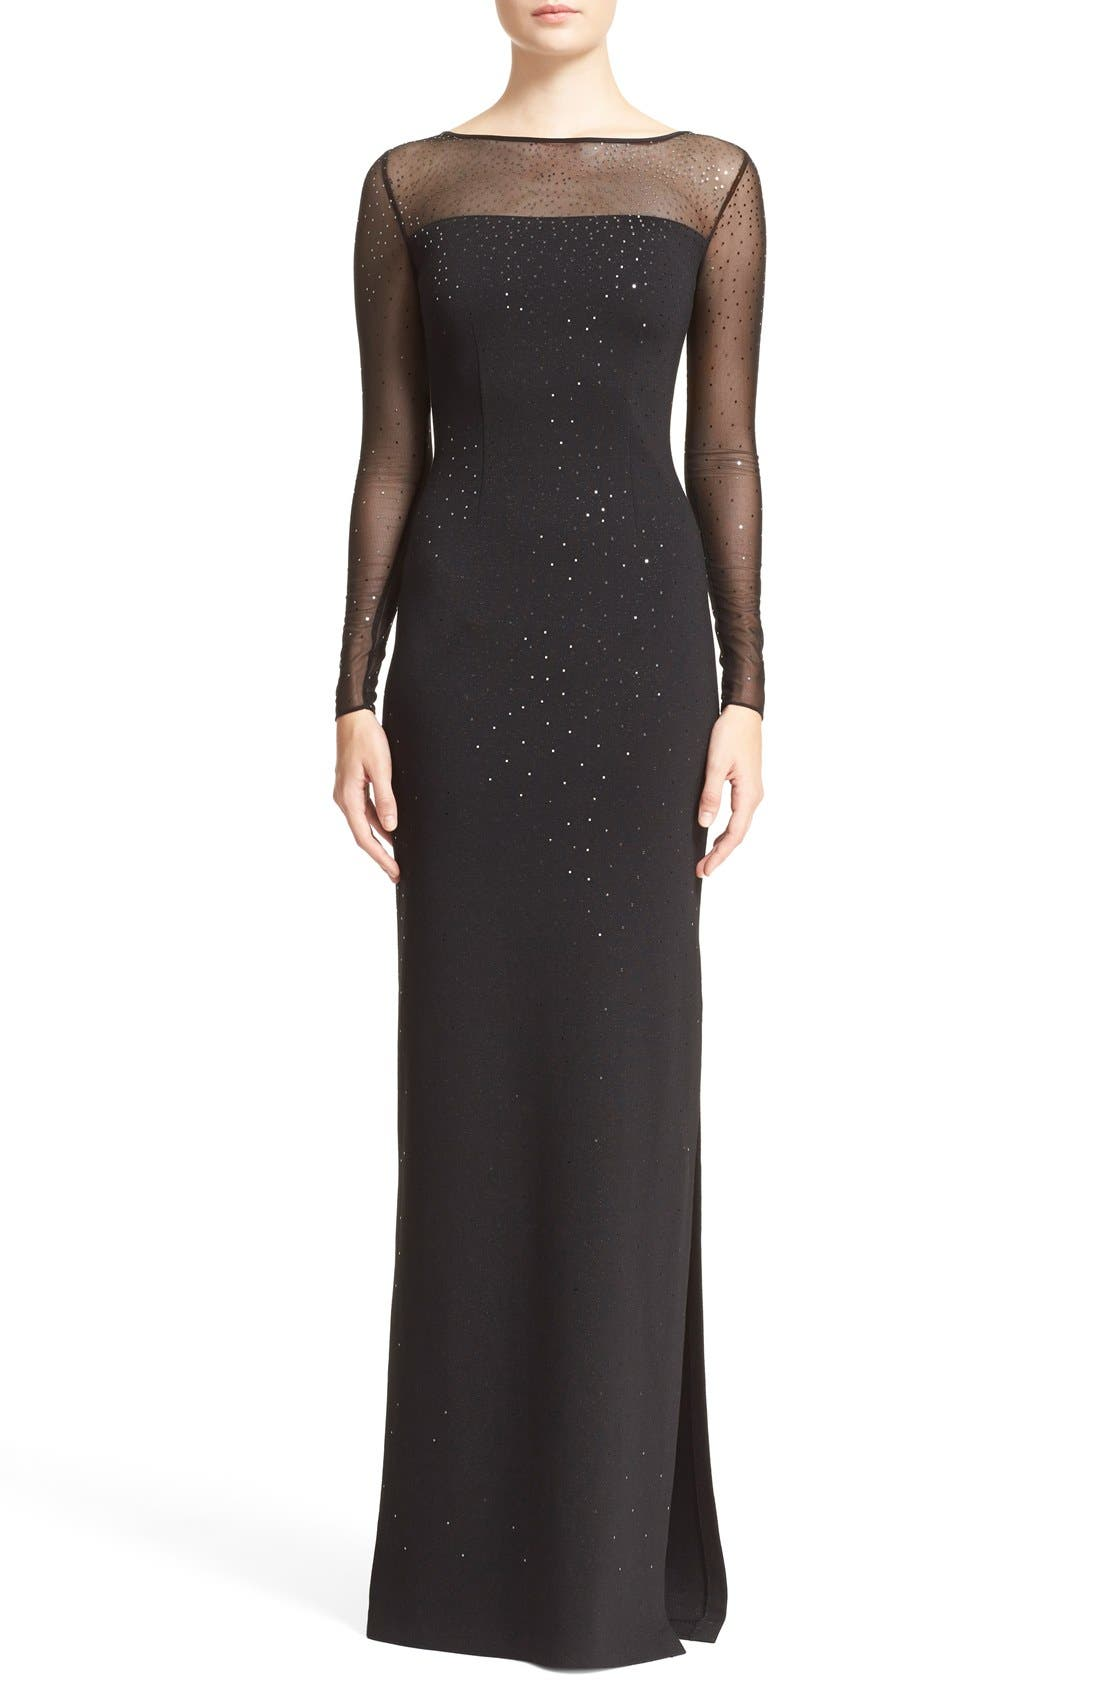 Alternate Image 1 Selected - St. John Collection Embellished Shimmer Milano Knit Gown